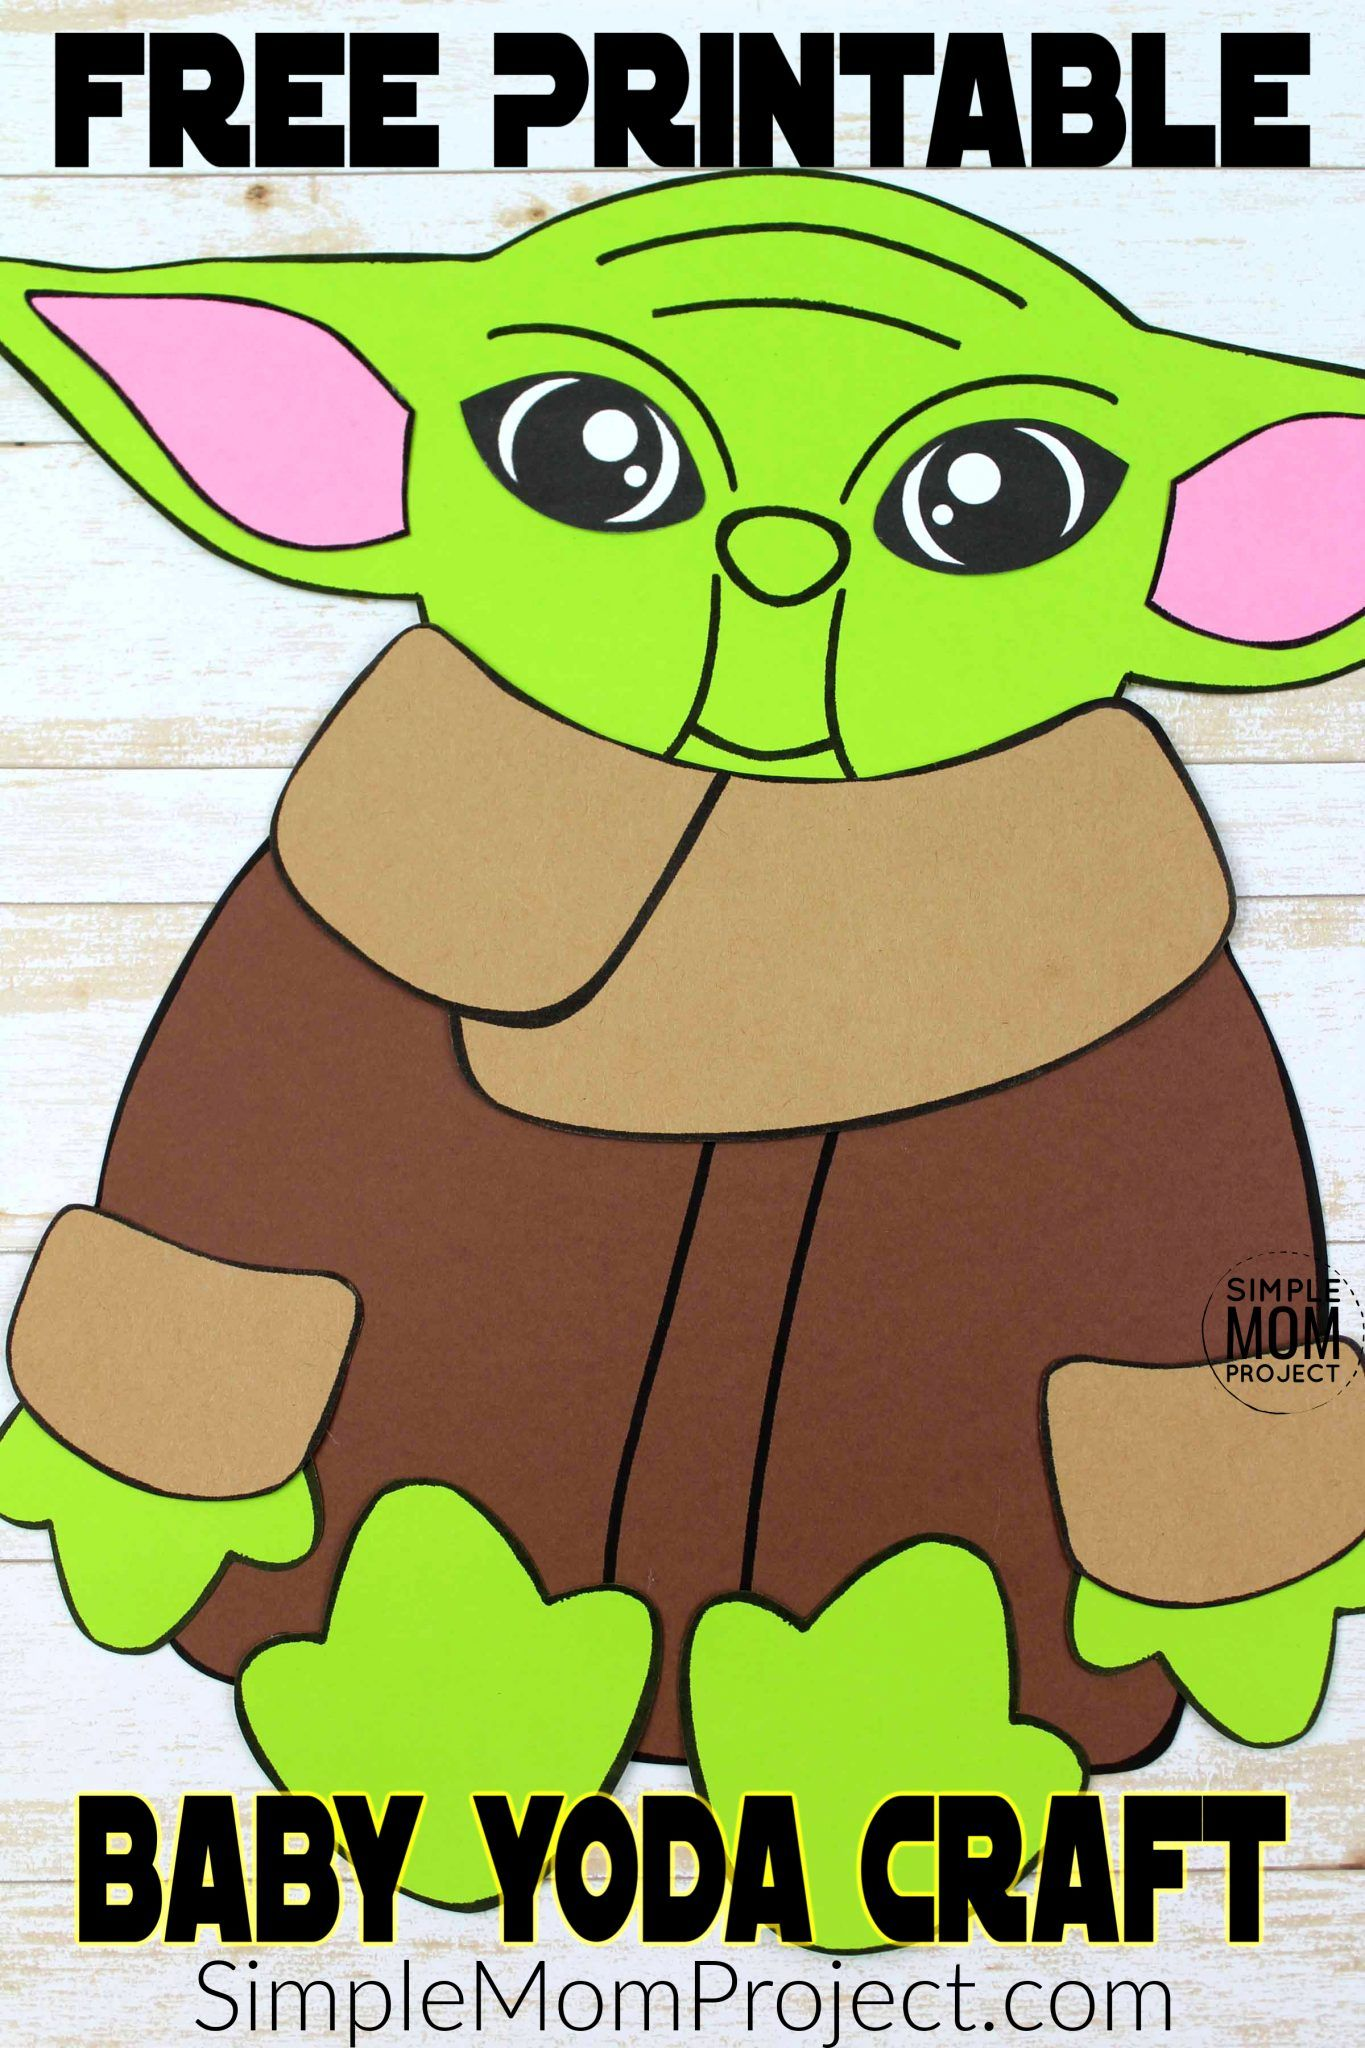 Build-a-Yoda Craft for Kids with a Free Printable Template